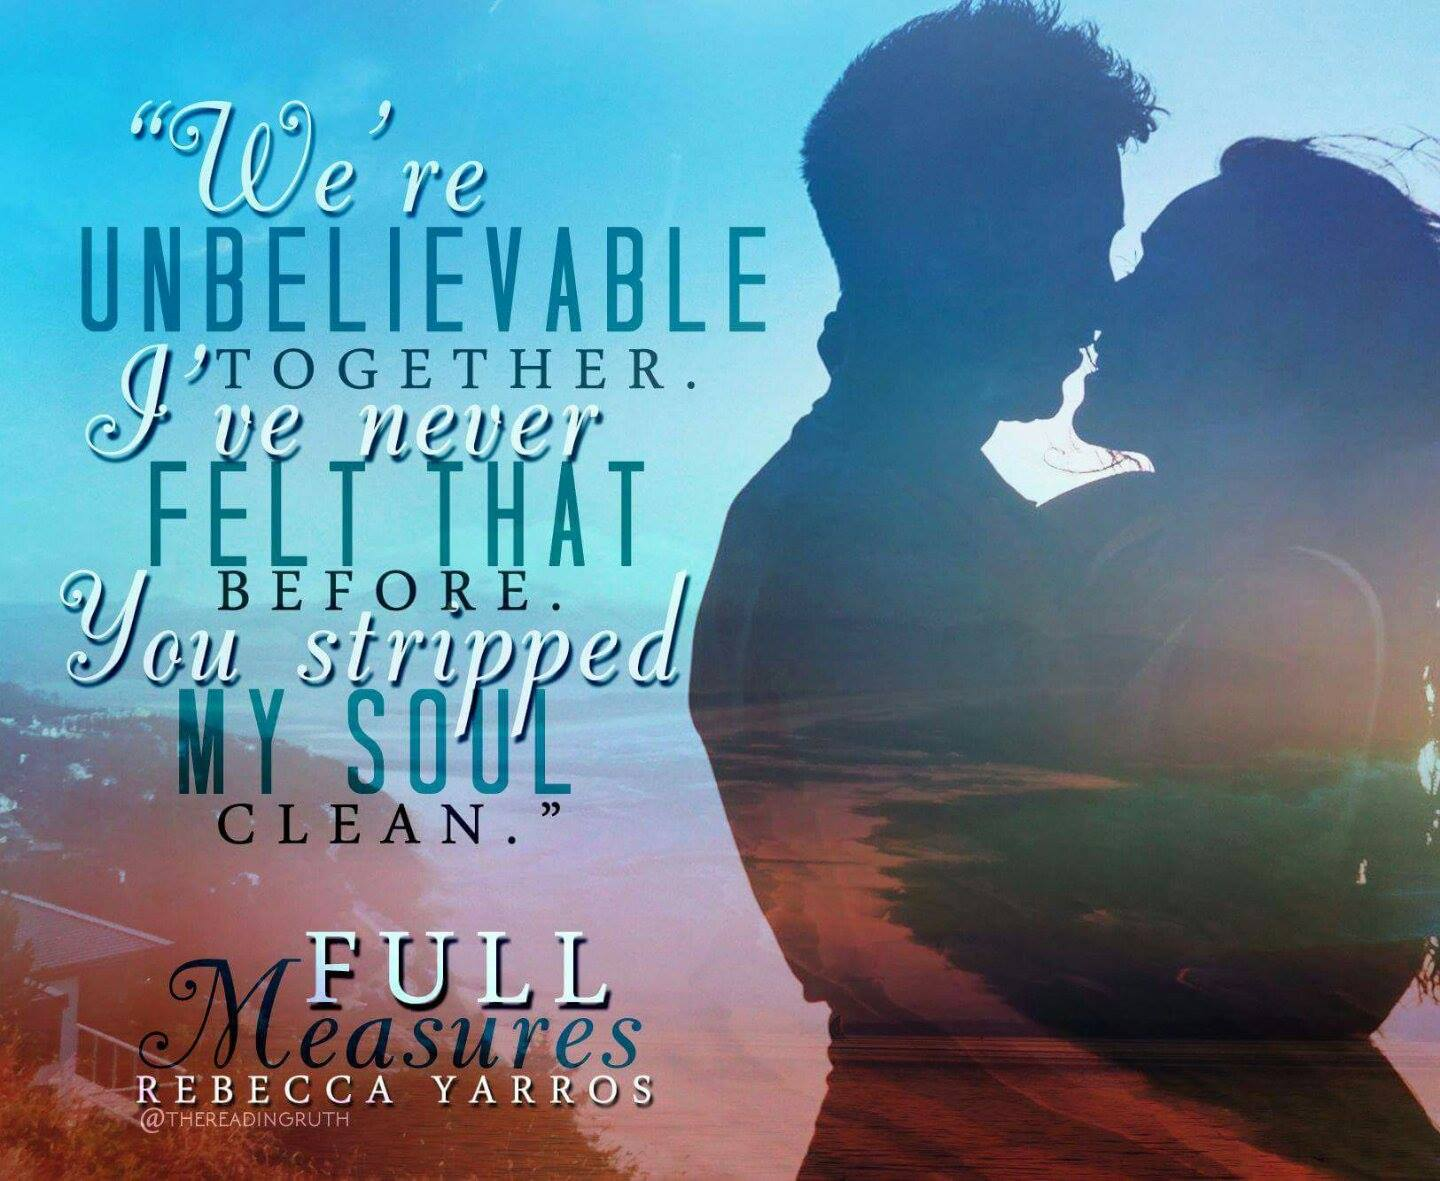 full measures teaser 2.jpg